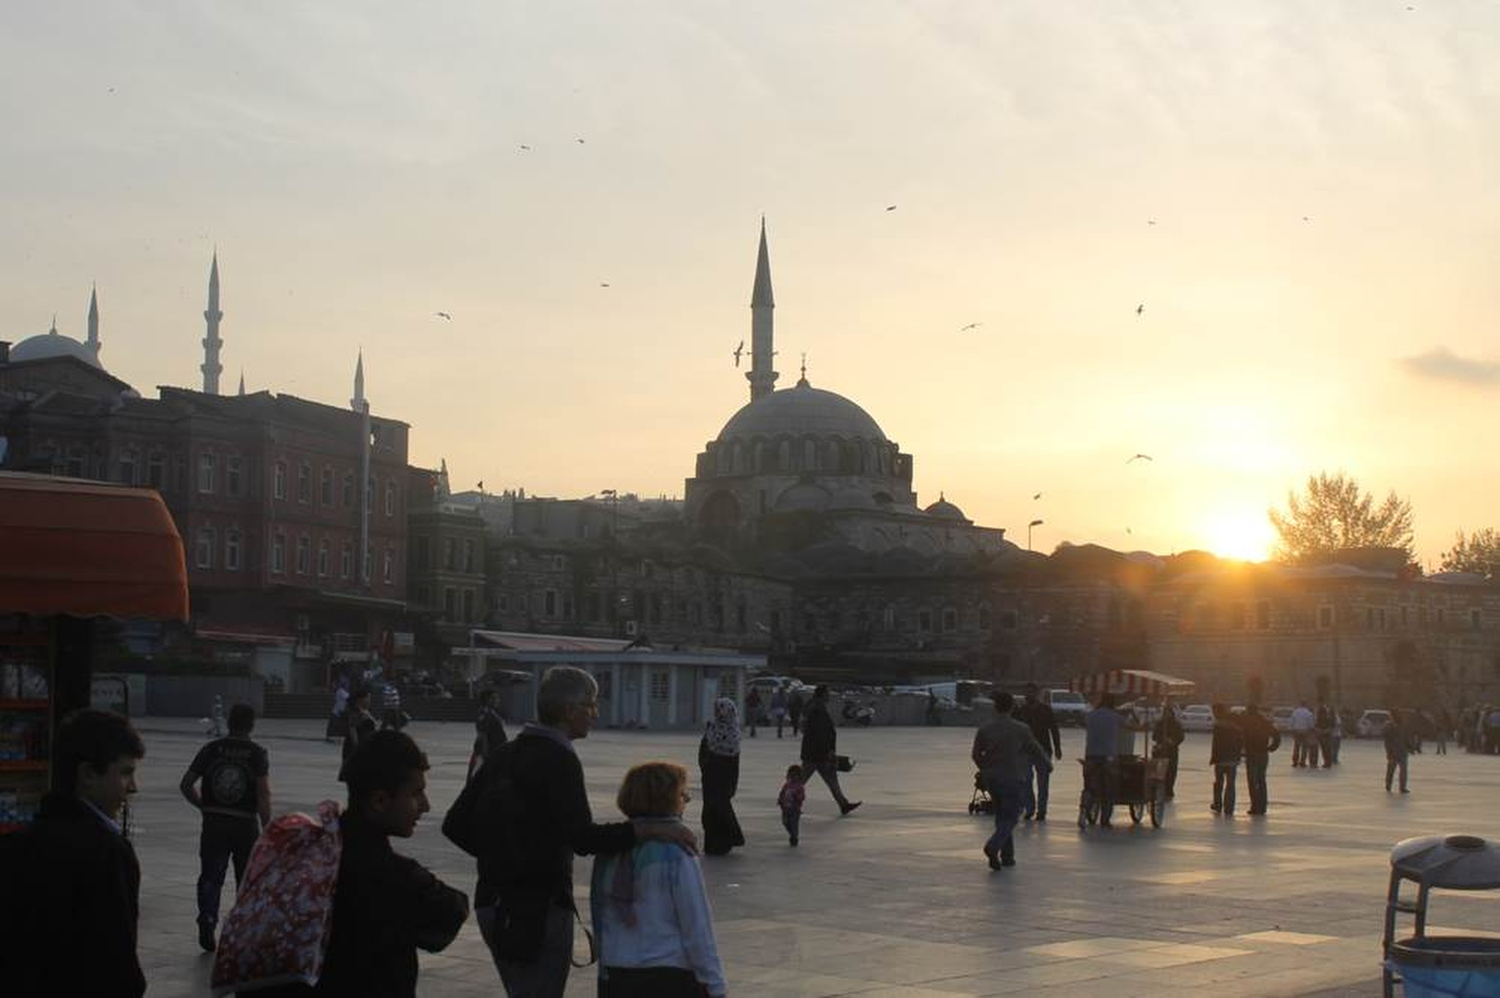 As the sun sets on Istanbul a mosque towers in the skyline  and a call for prayer emanates from the speakers on the minarets of the mosque. A street vendor sells food from his red- and white-roofed cart. Phillip Dube '16/Bates College.